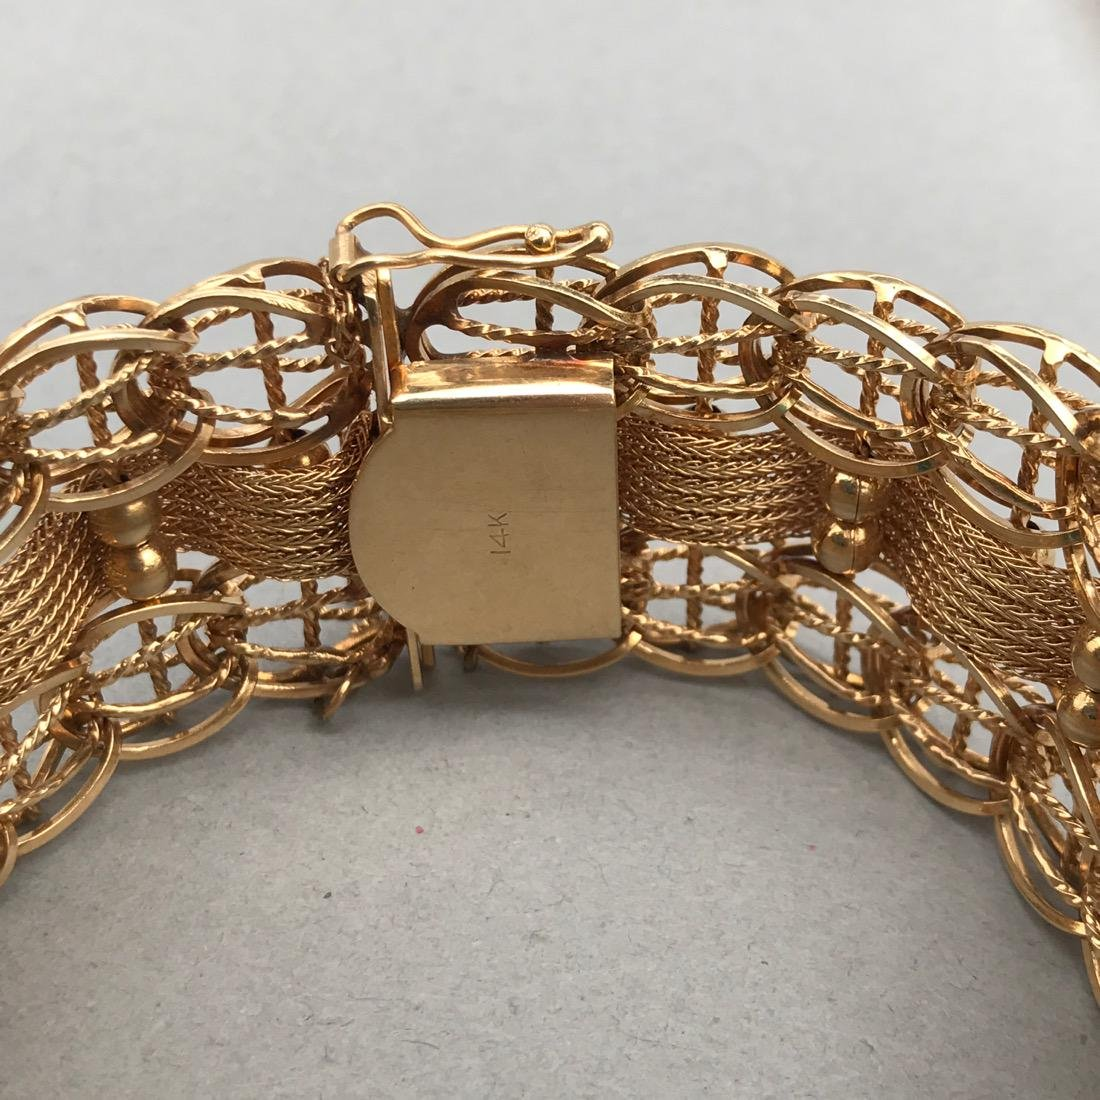 Ornate Woven Chain 14K Gold Bracelet - 2